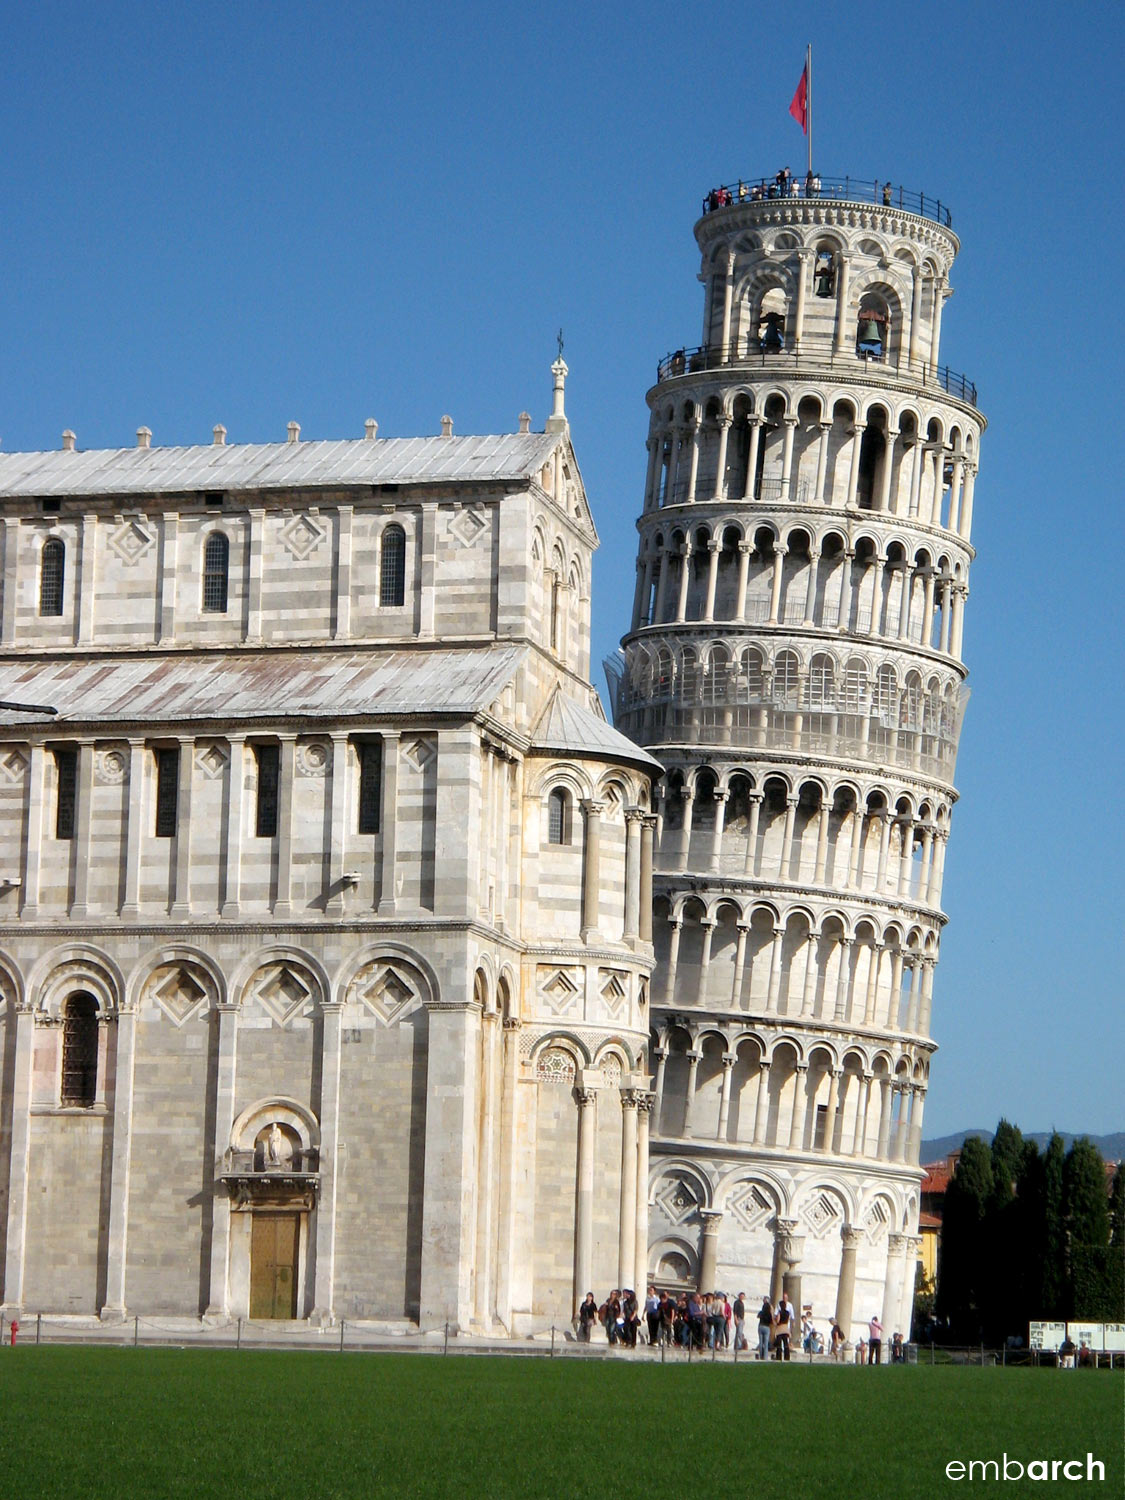 Piazza del Duomo - the Leaning Tower of Pisa